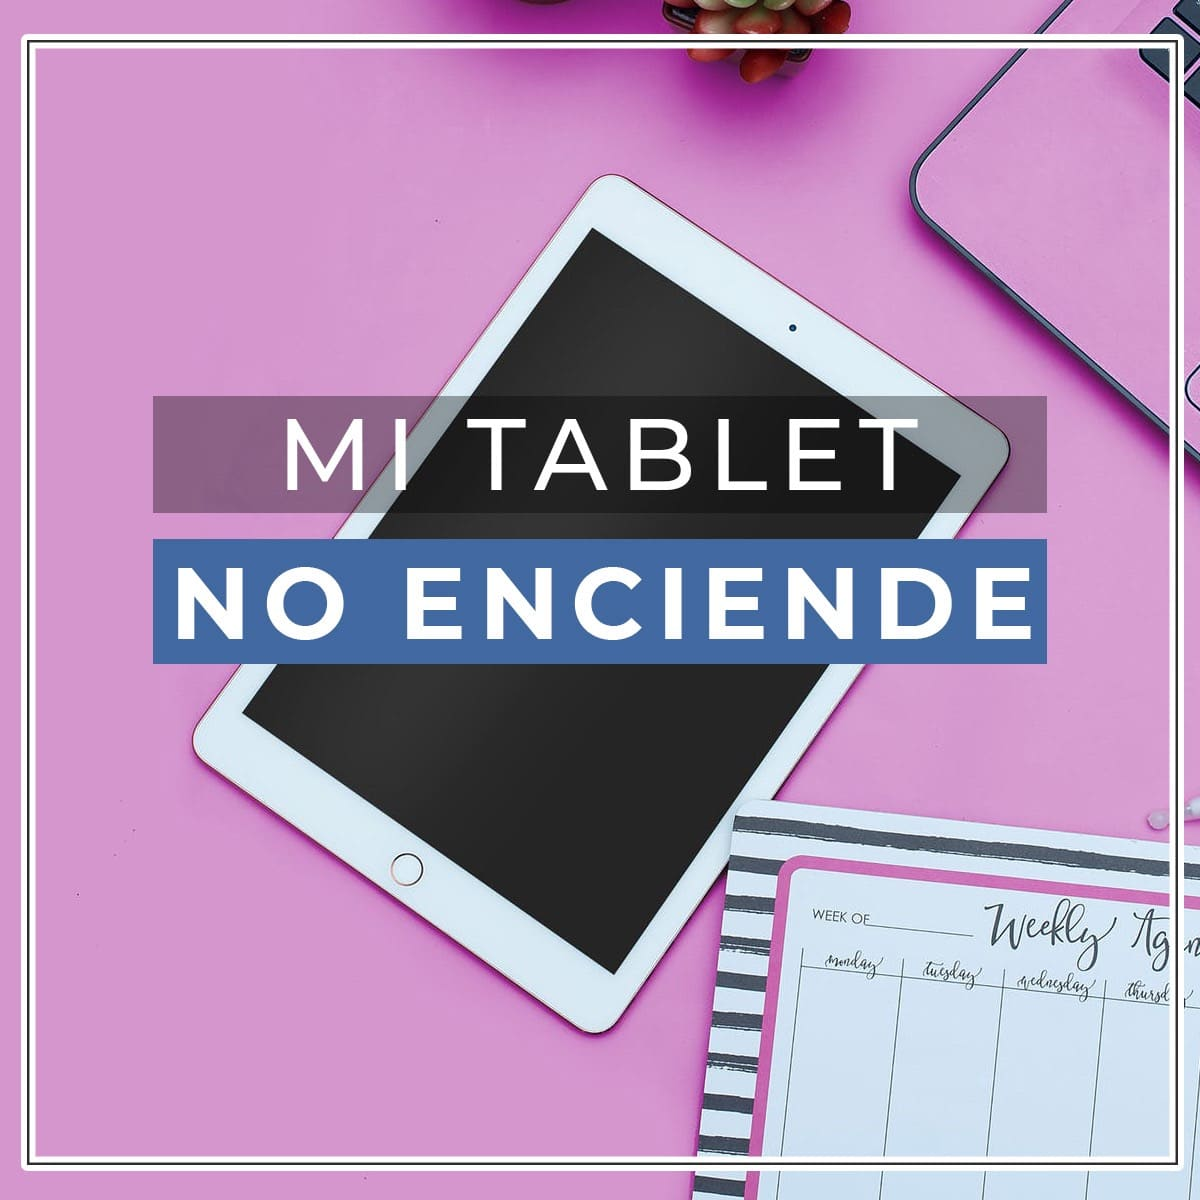 mi tablet no enciende